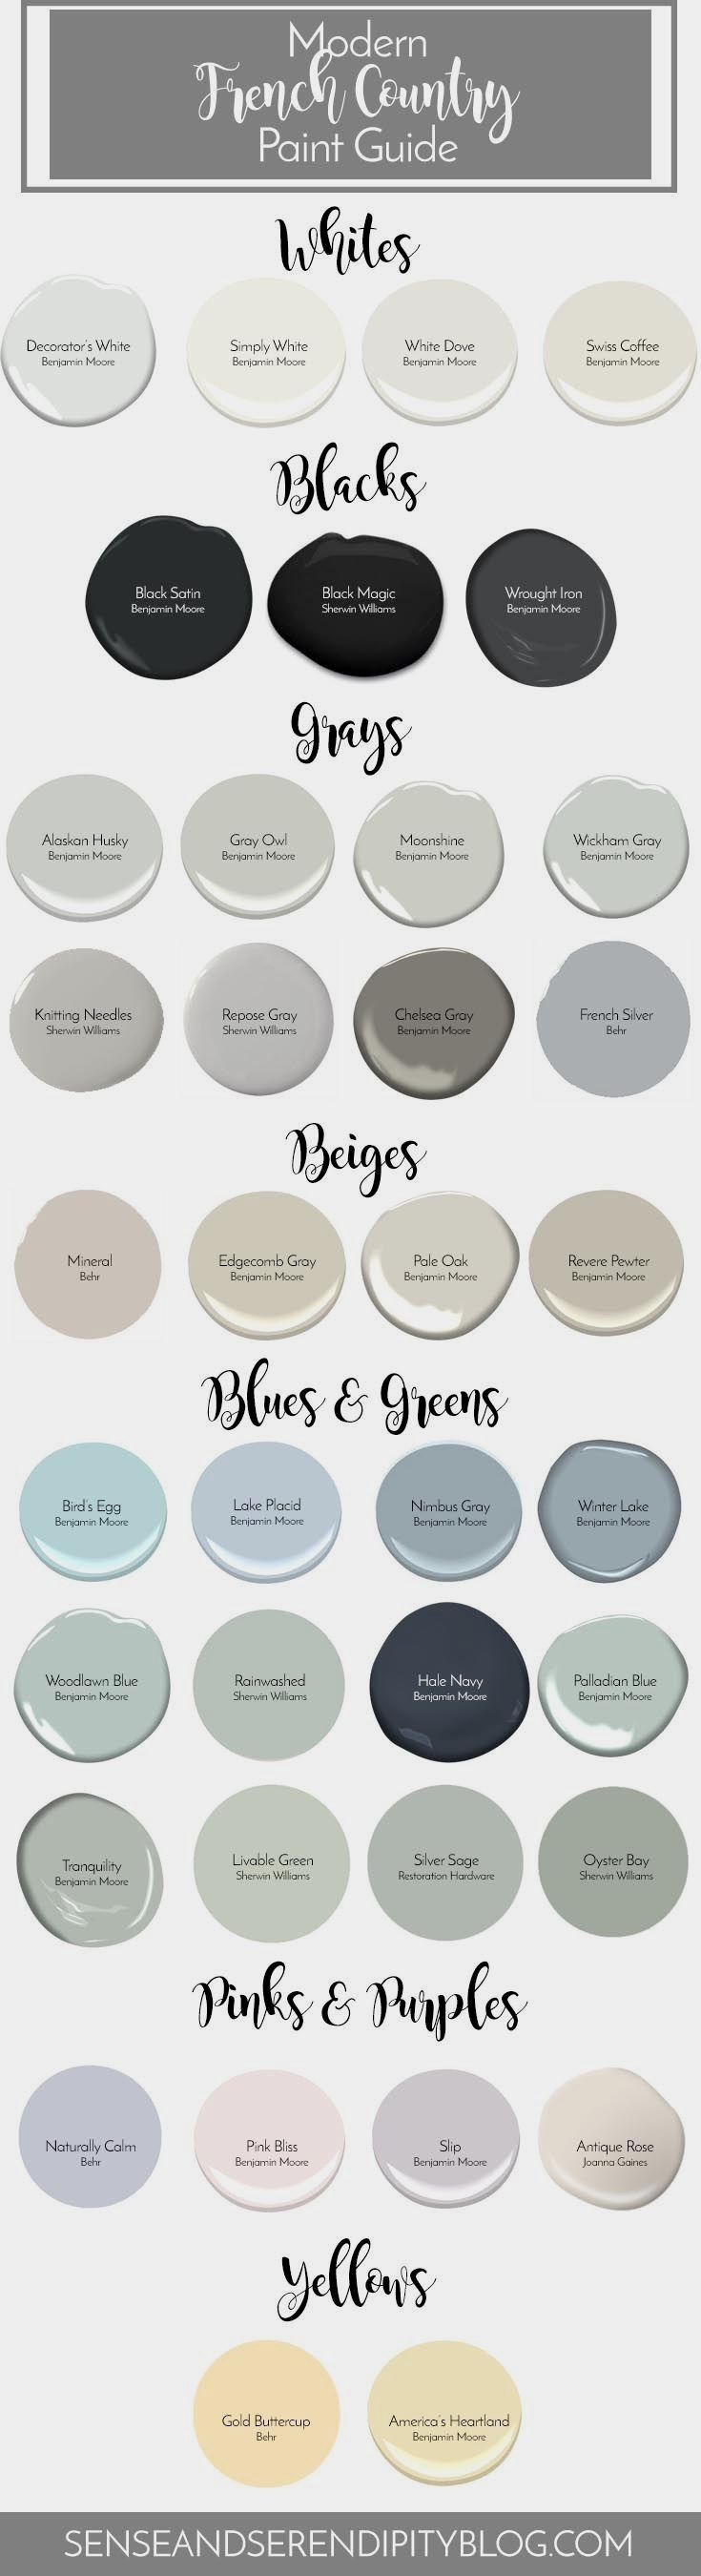 Finding the perfect paint color for your farmhouse style can be overwhelming. I've put together a guide to help you choose the best color for your space! #HomeDécor,